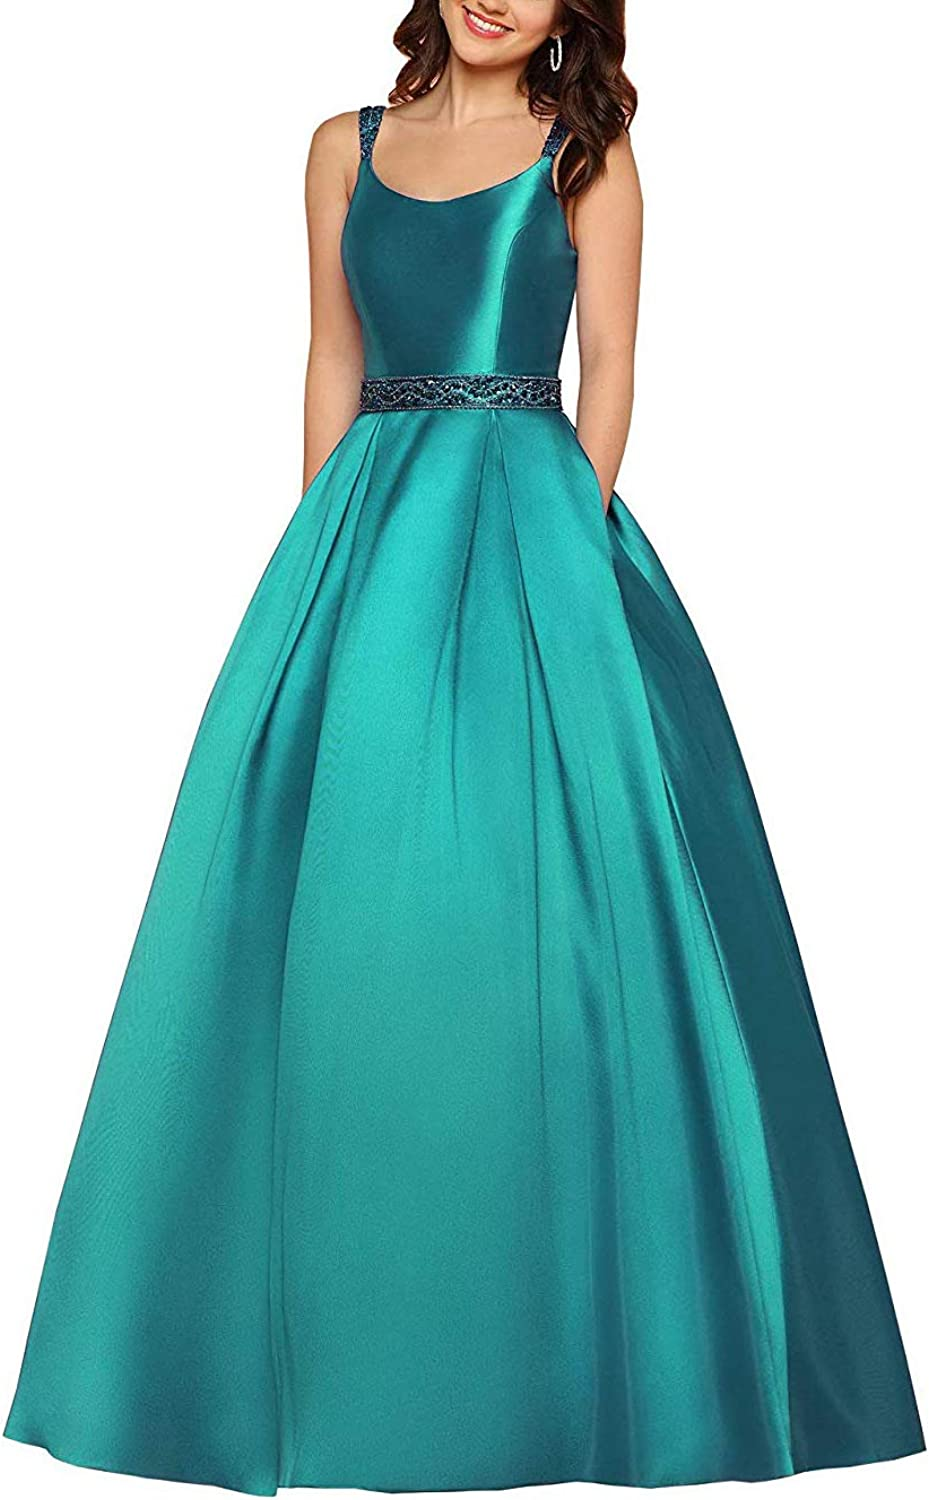 Long Prom Gown for Women Beaded Prom Dresses with Pockets Aline Evening Ball Gowns